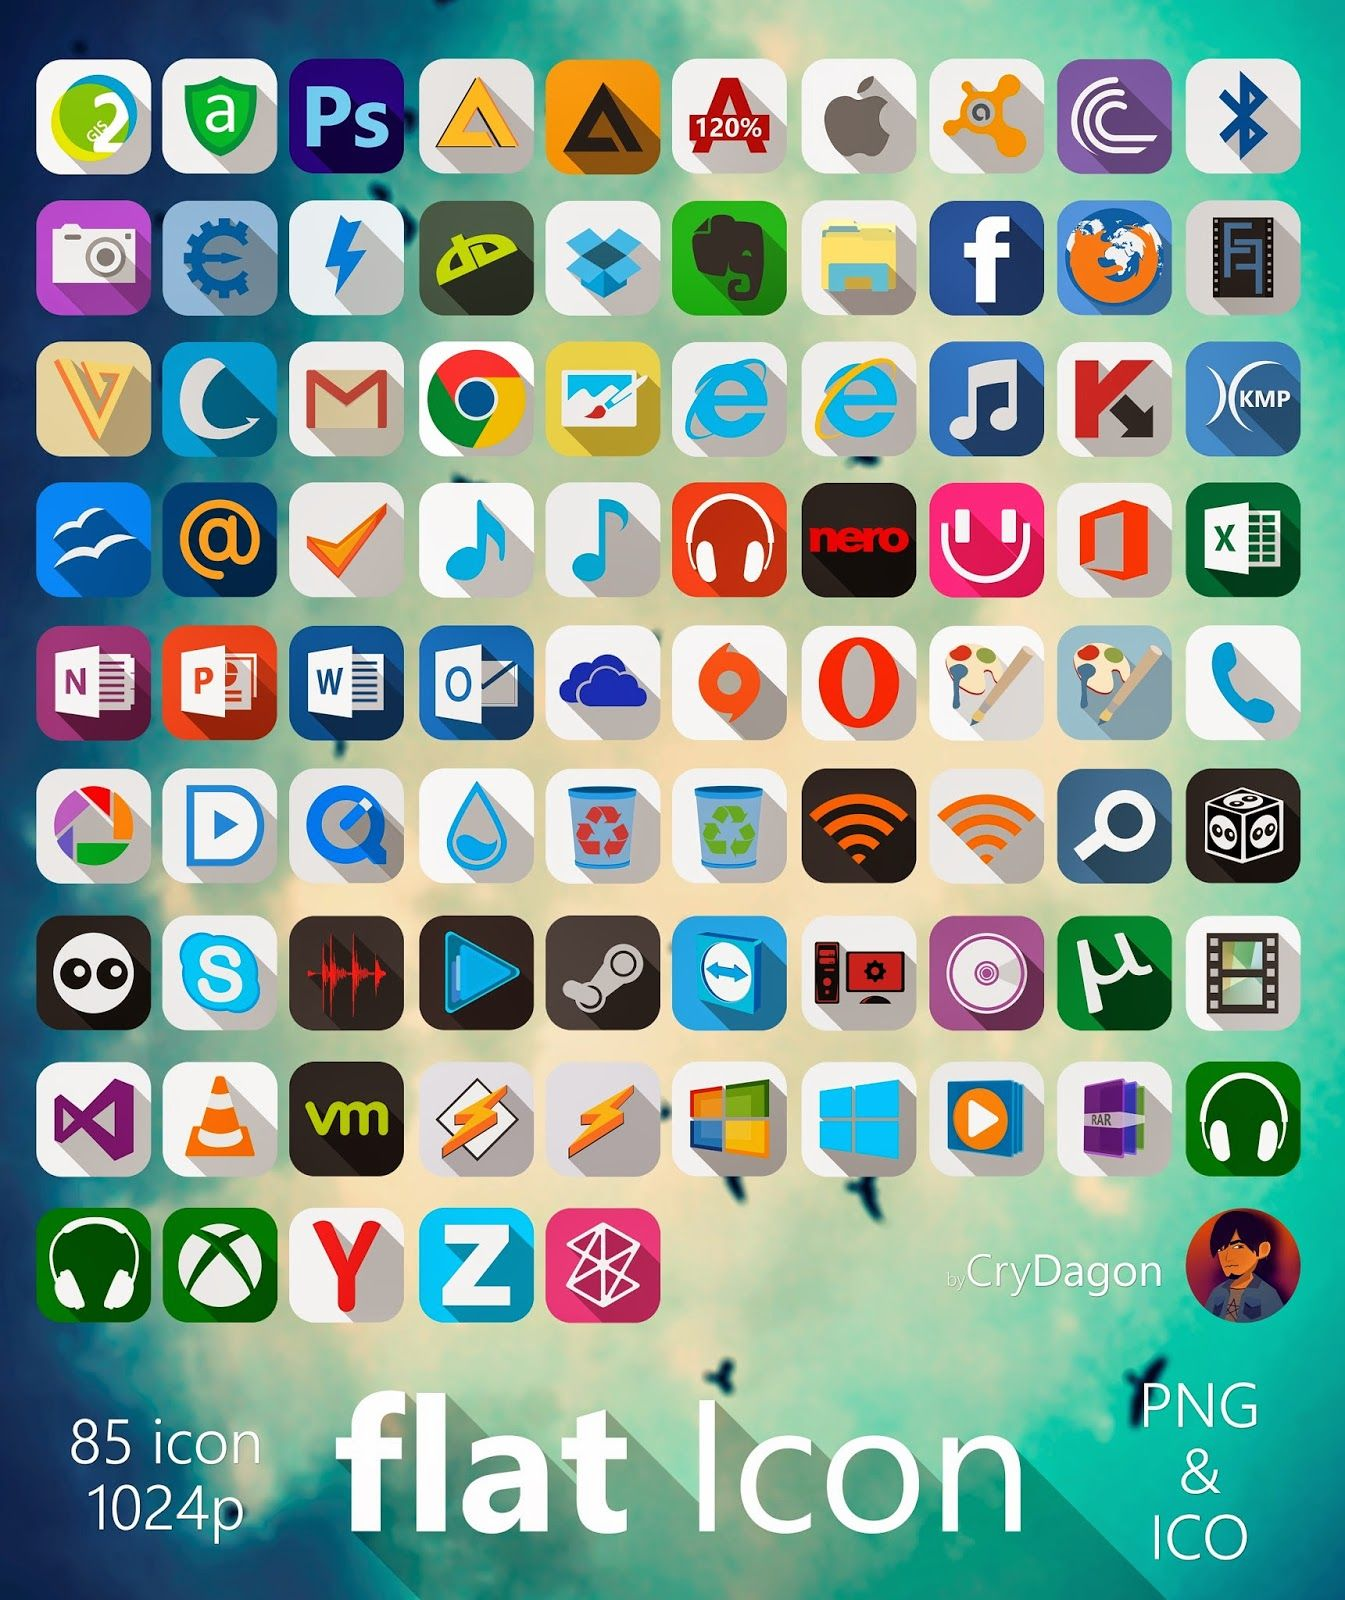 Pin by Cleodesktop on Icons | Icon pack, Hd icons, Flats